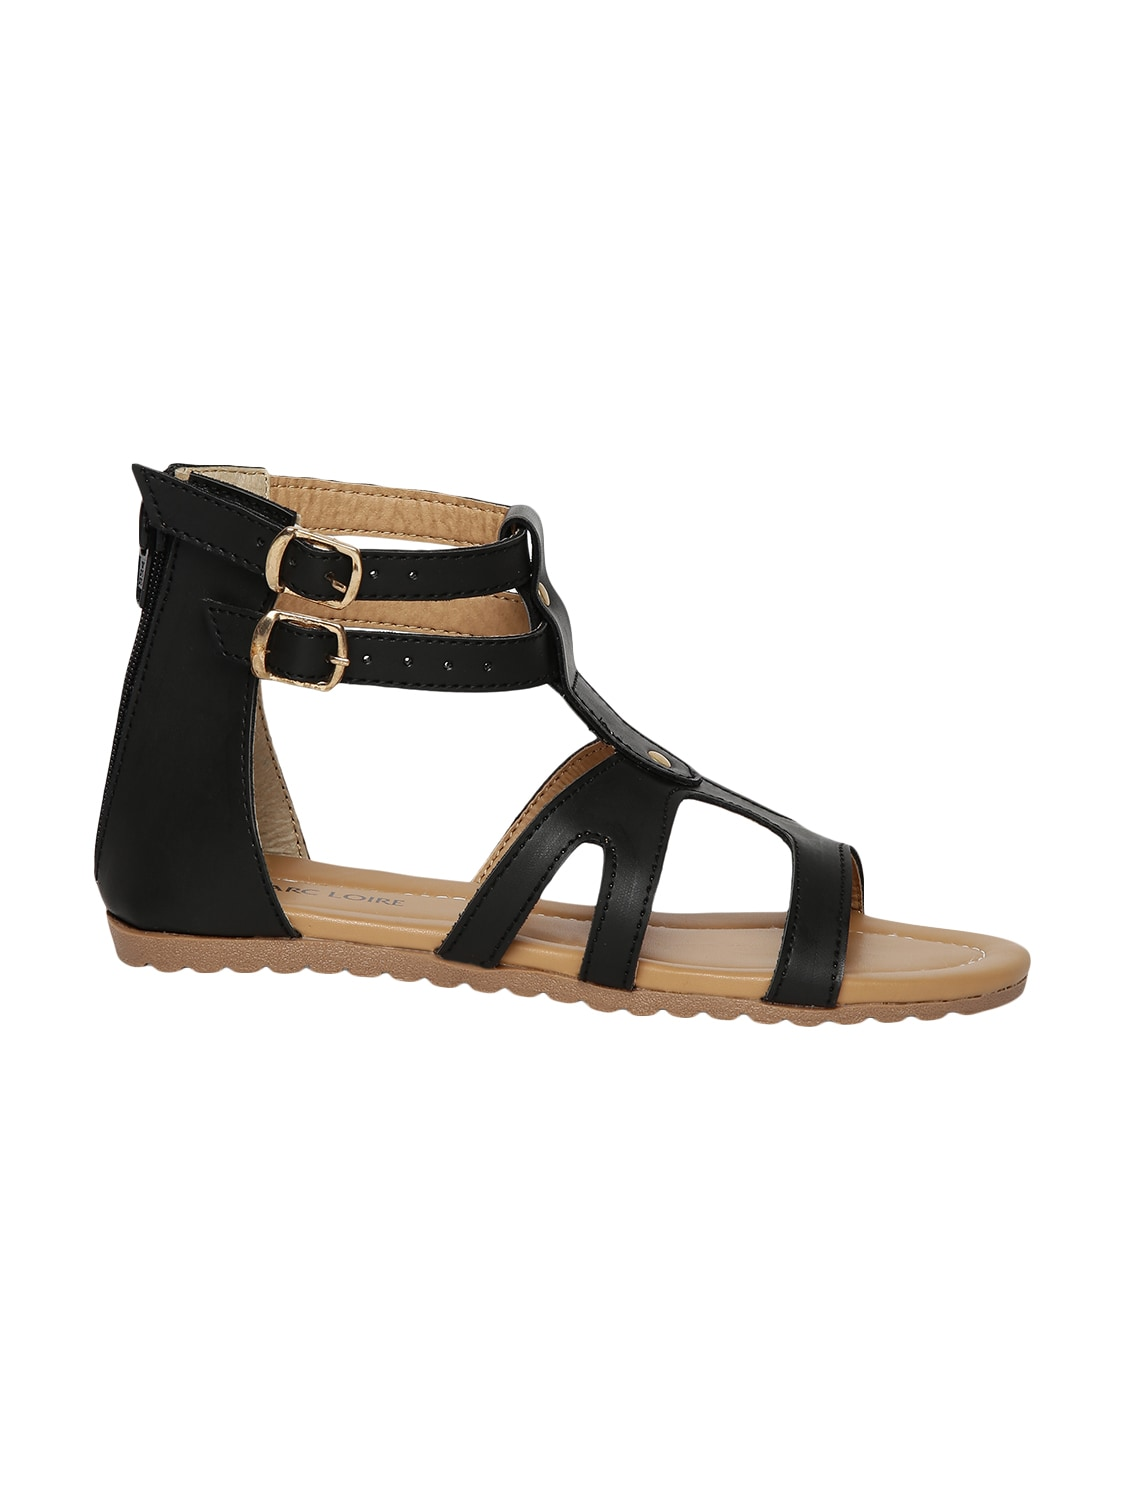 b86ca6abe08 Buy Black Faux Leather Gladiators Sandals for Women from Marc Loire for  ₹987 at 48% off